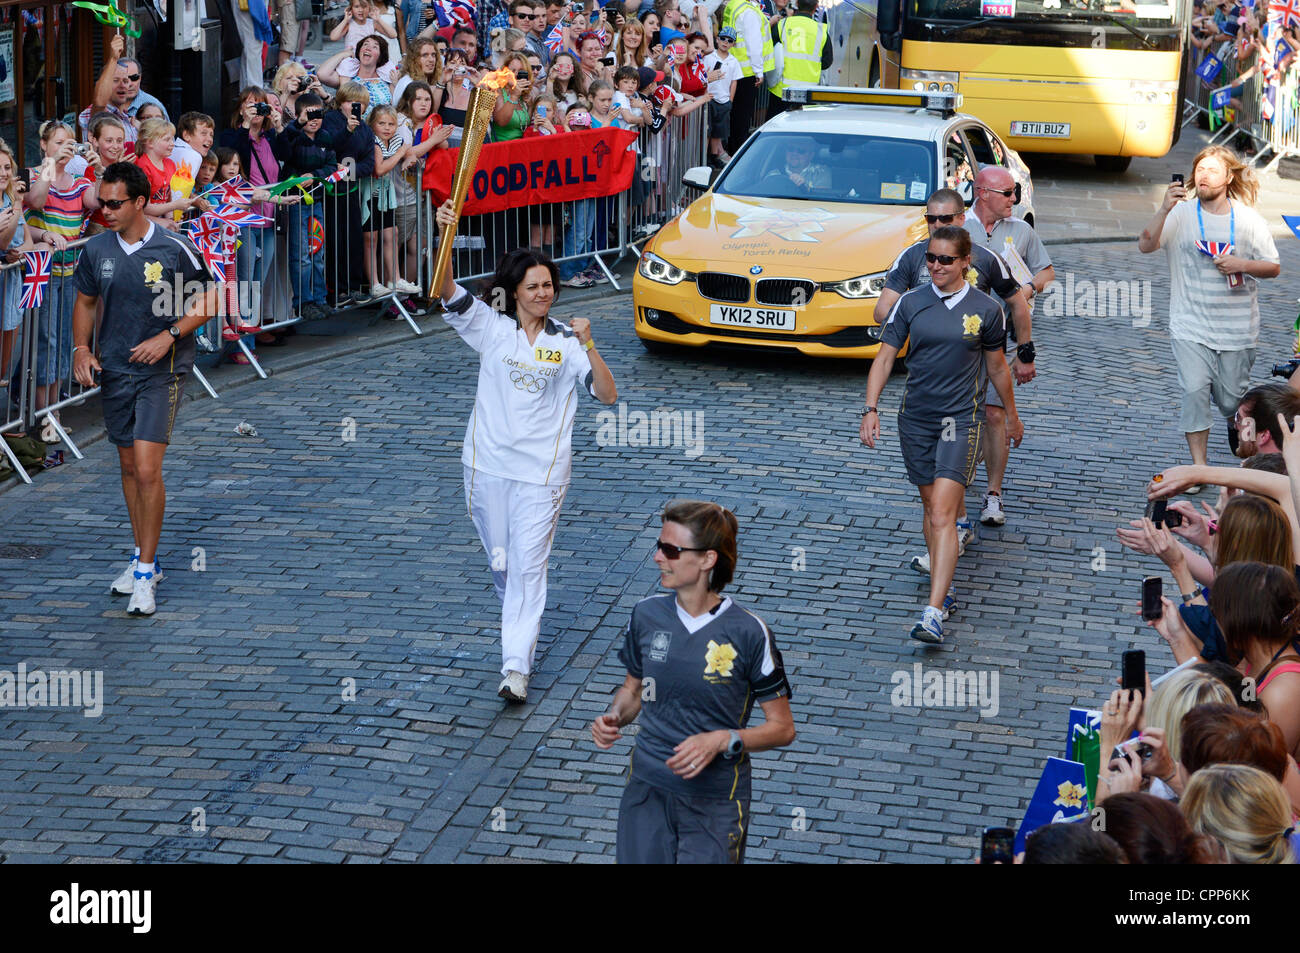 Chester, UK. 29 May, 2012. The Olympic Torch makes it's way through the streets of Chester passing The Cross - Stock Image